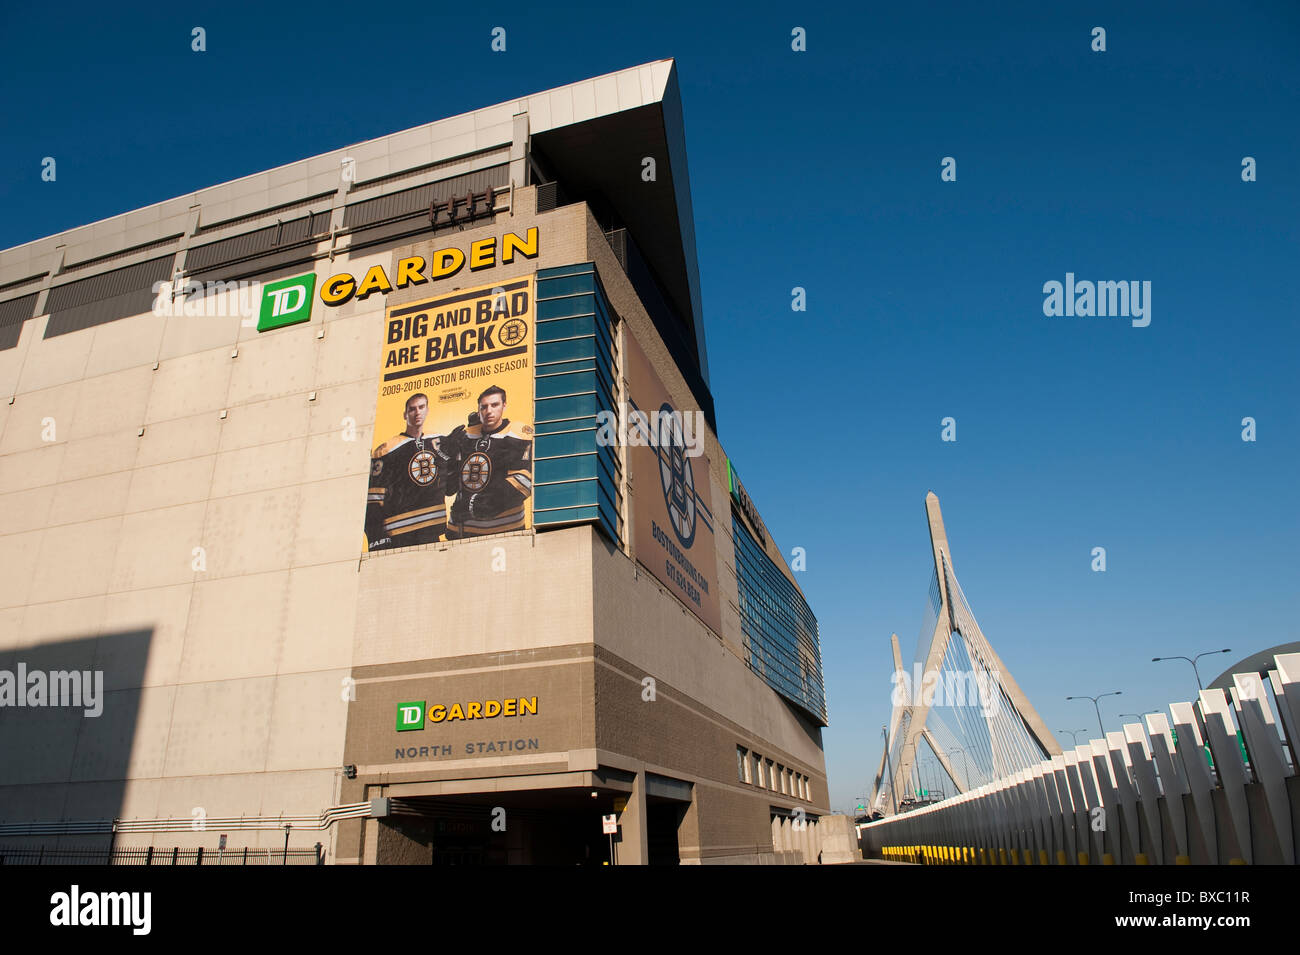 seating tickets box tdgarden td garden office chart